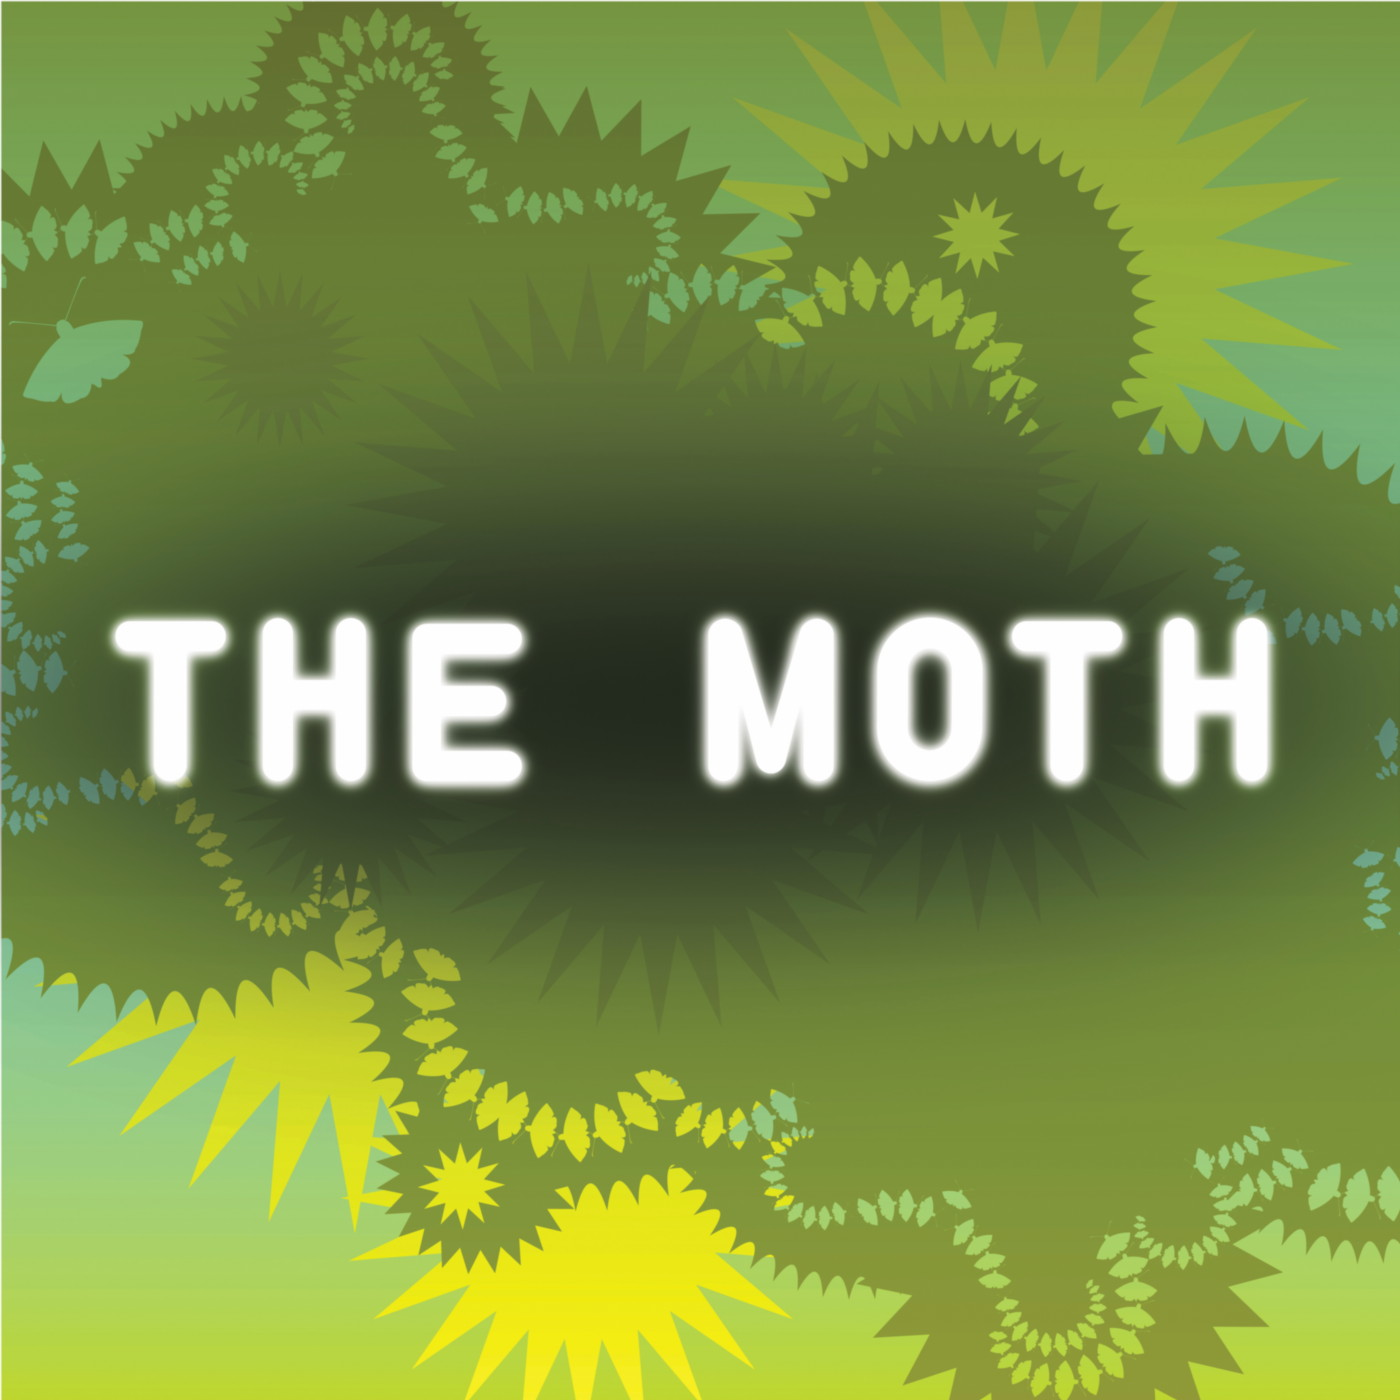 the Moth logo.jpg